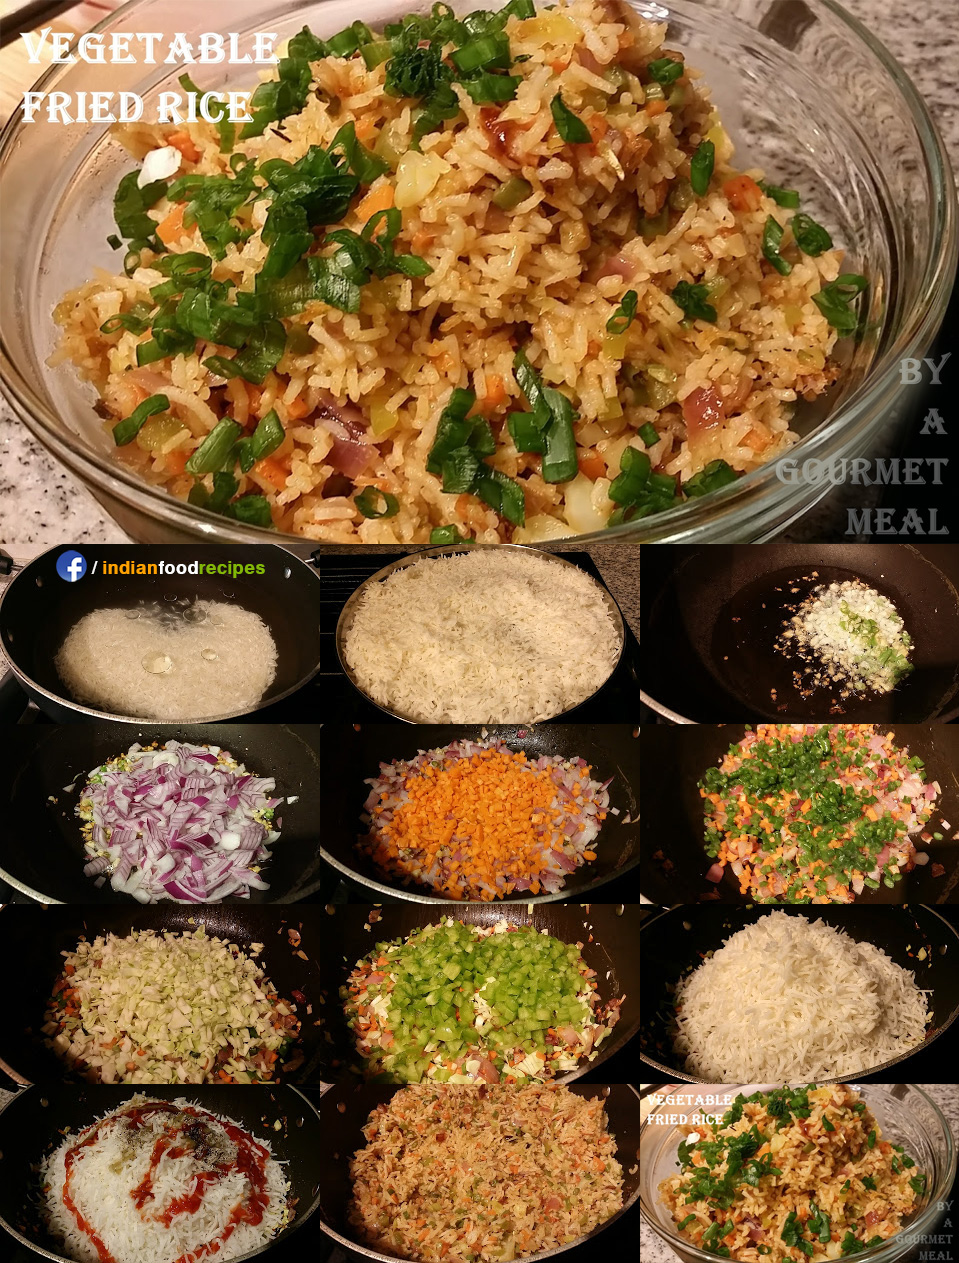 Vegetable Fried Rice recipe step by step